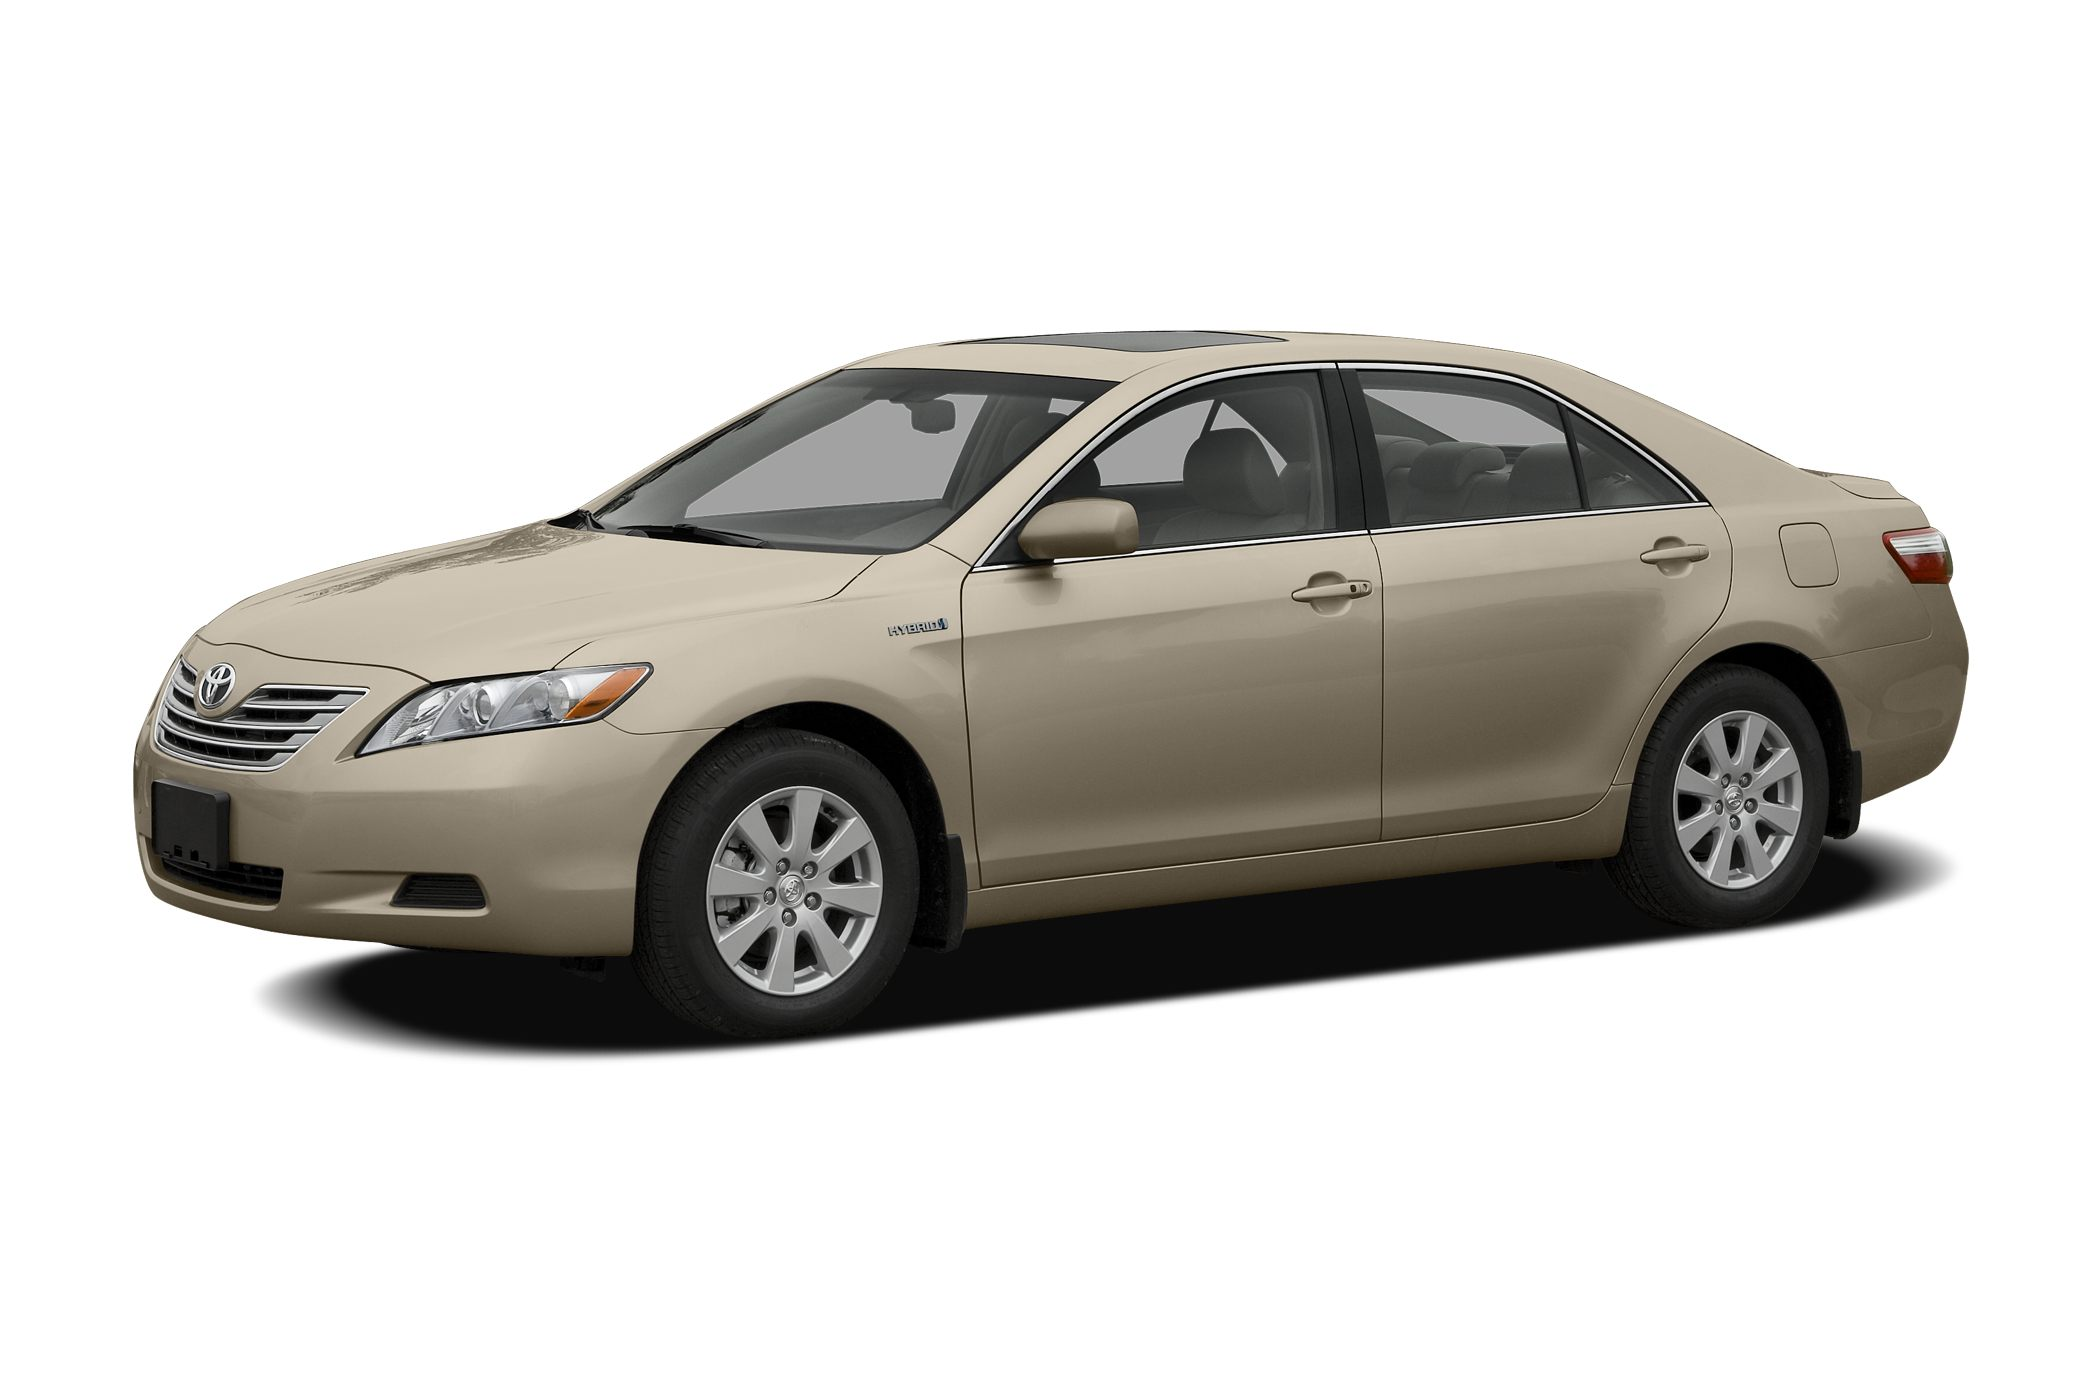 2008 Toyota Camry Hybrid Pricing And Specs